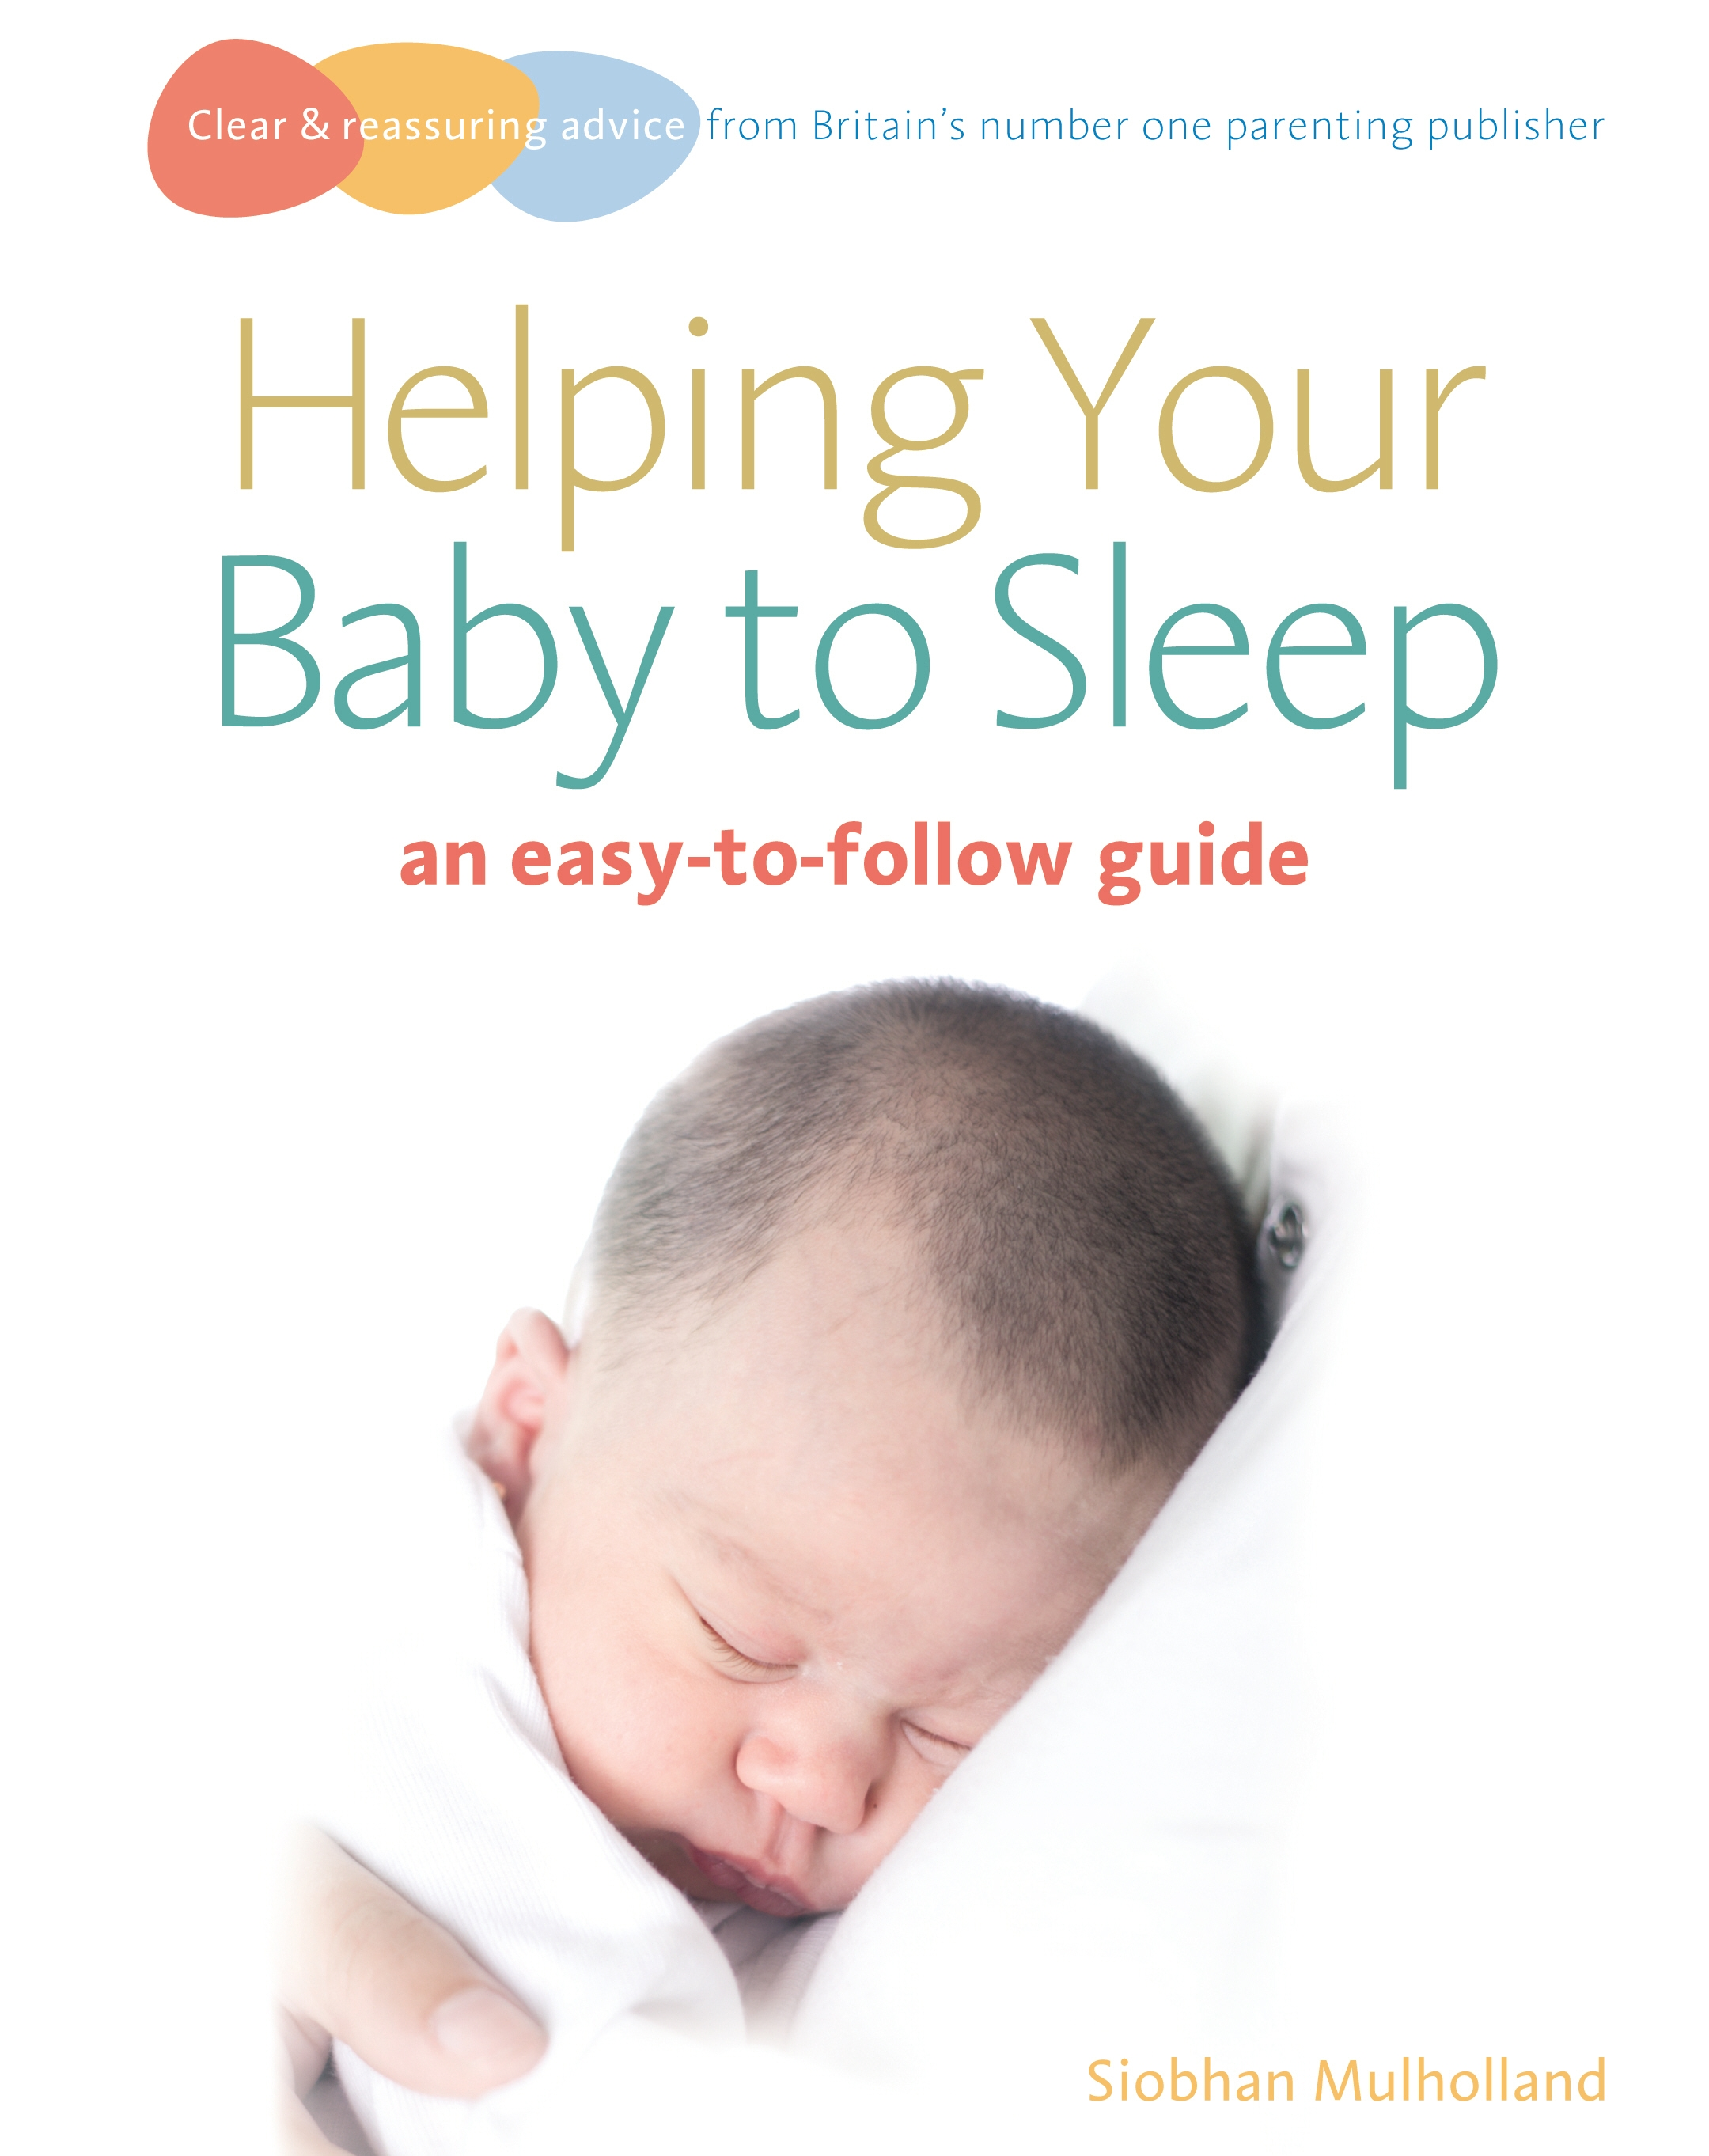 Helping Your baby to Sleep by Siobhan Mulholland - Penguin